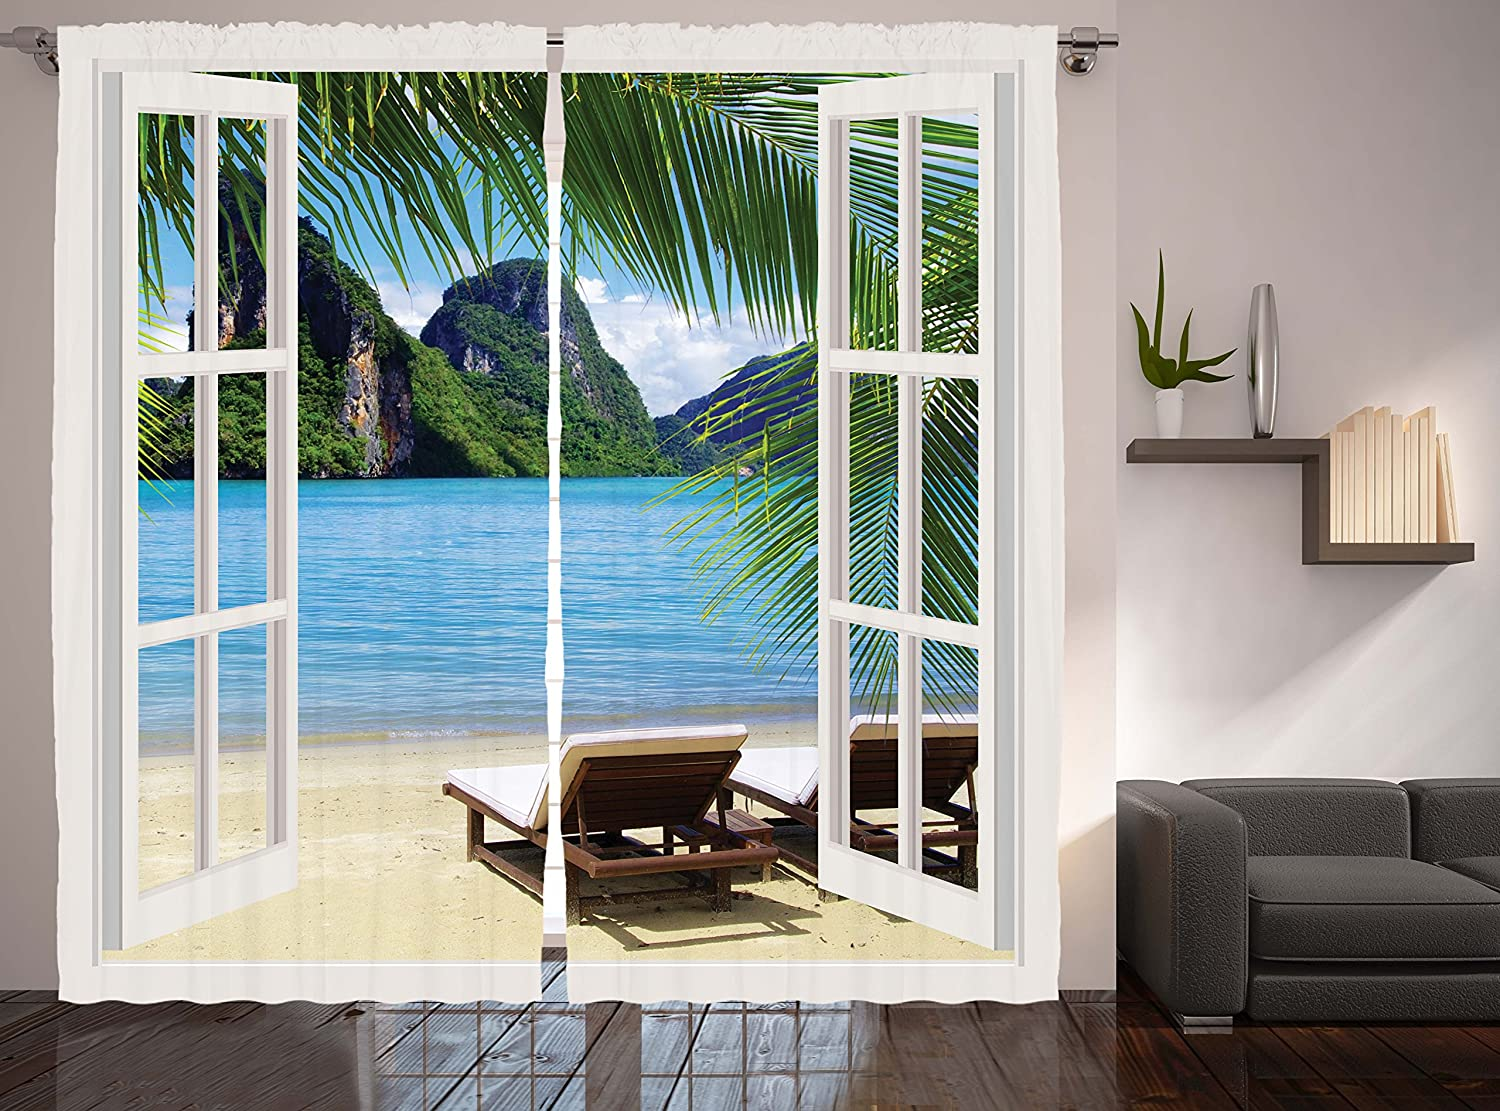 Ambesonne Nautical Curtains Palm Tree Decor by, Ocean Beach Seascape Heaven Sunbeds Balcony White Wooden Windows Summer Tropical 2 Panels Set Curtains for Living Room and Bedrooms, Blue Green White